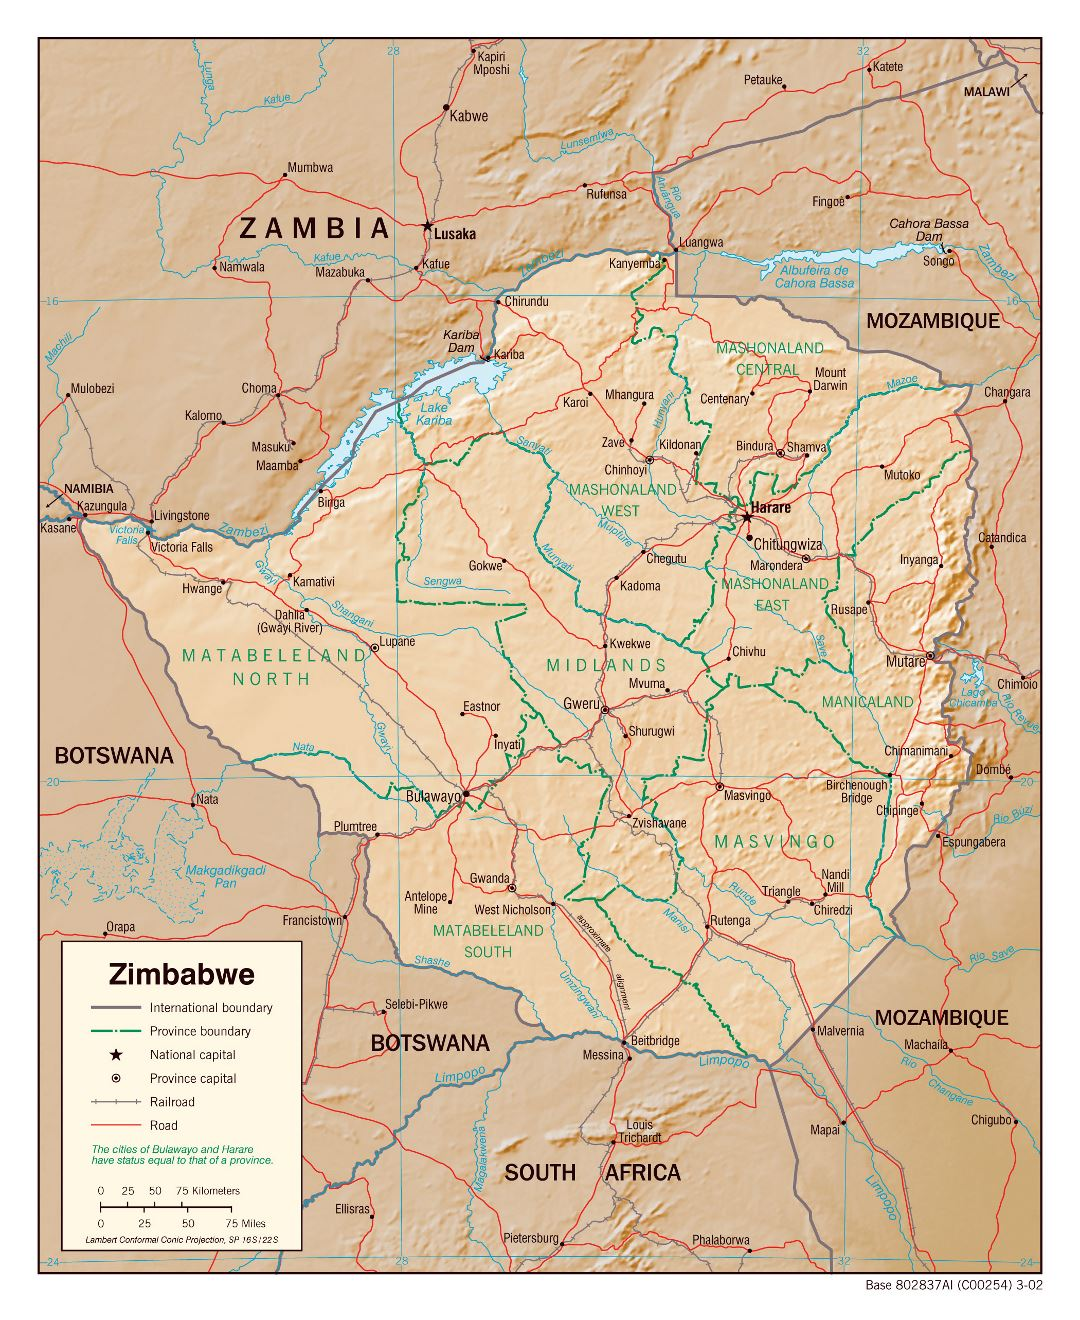 Large political and administrative map of Zimbabwe with relief, roads, railroads and major cities - 2002